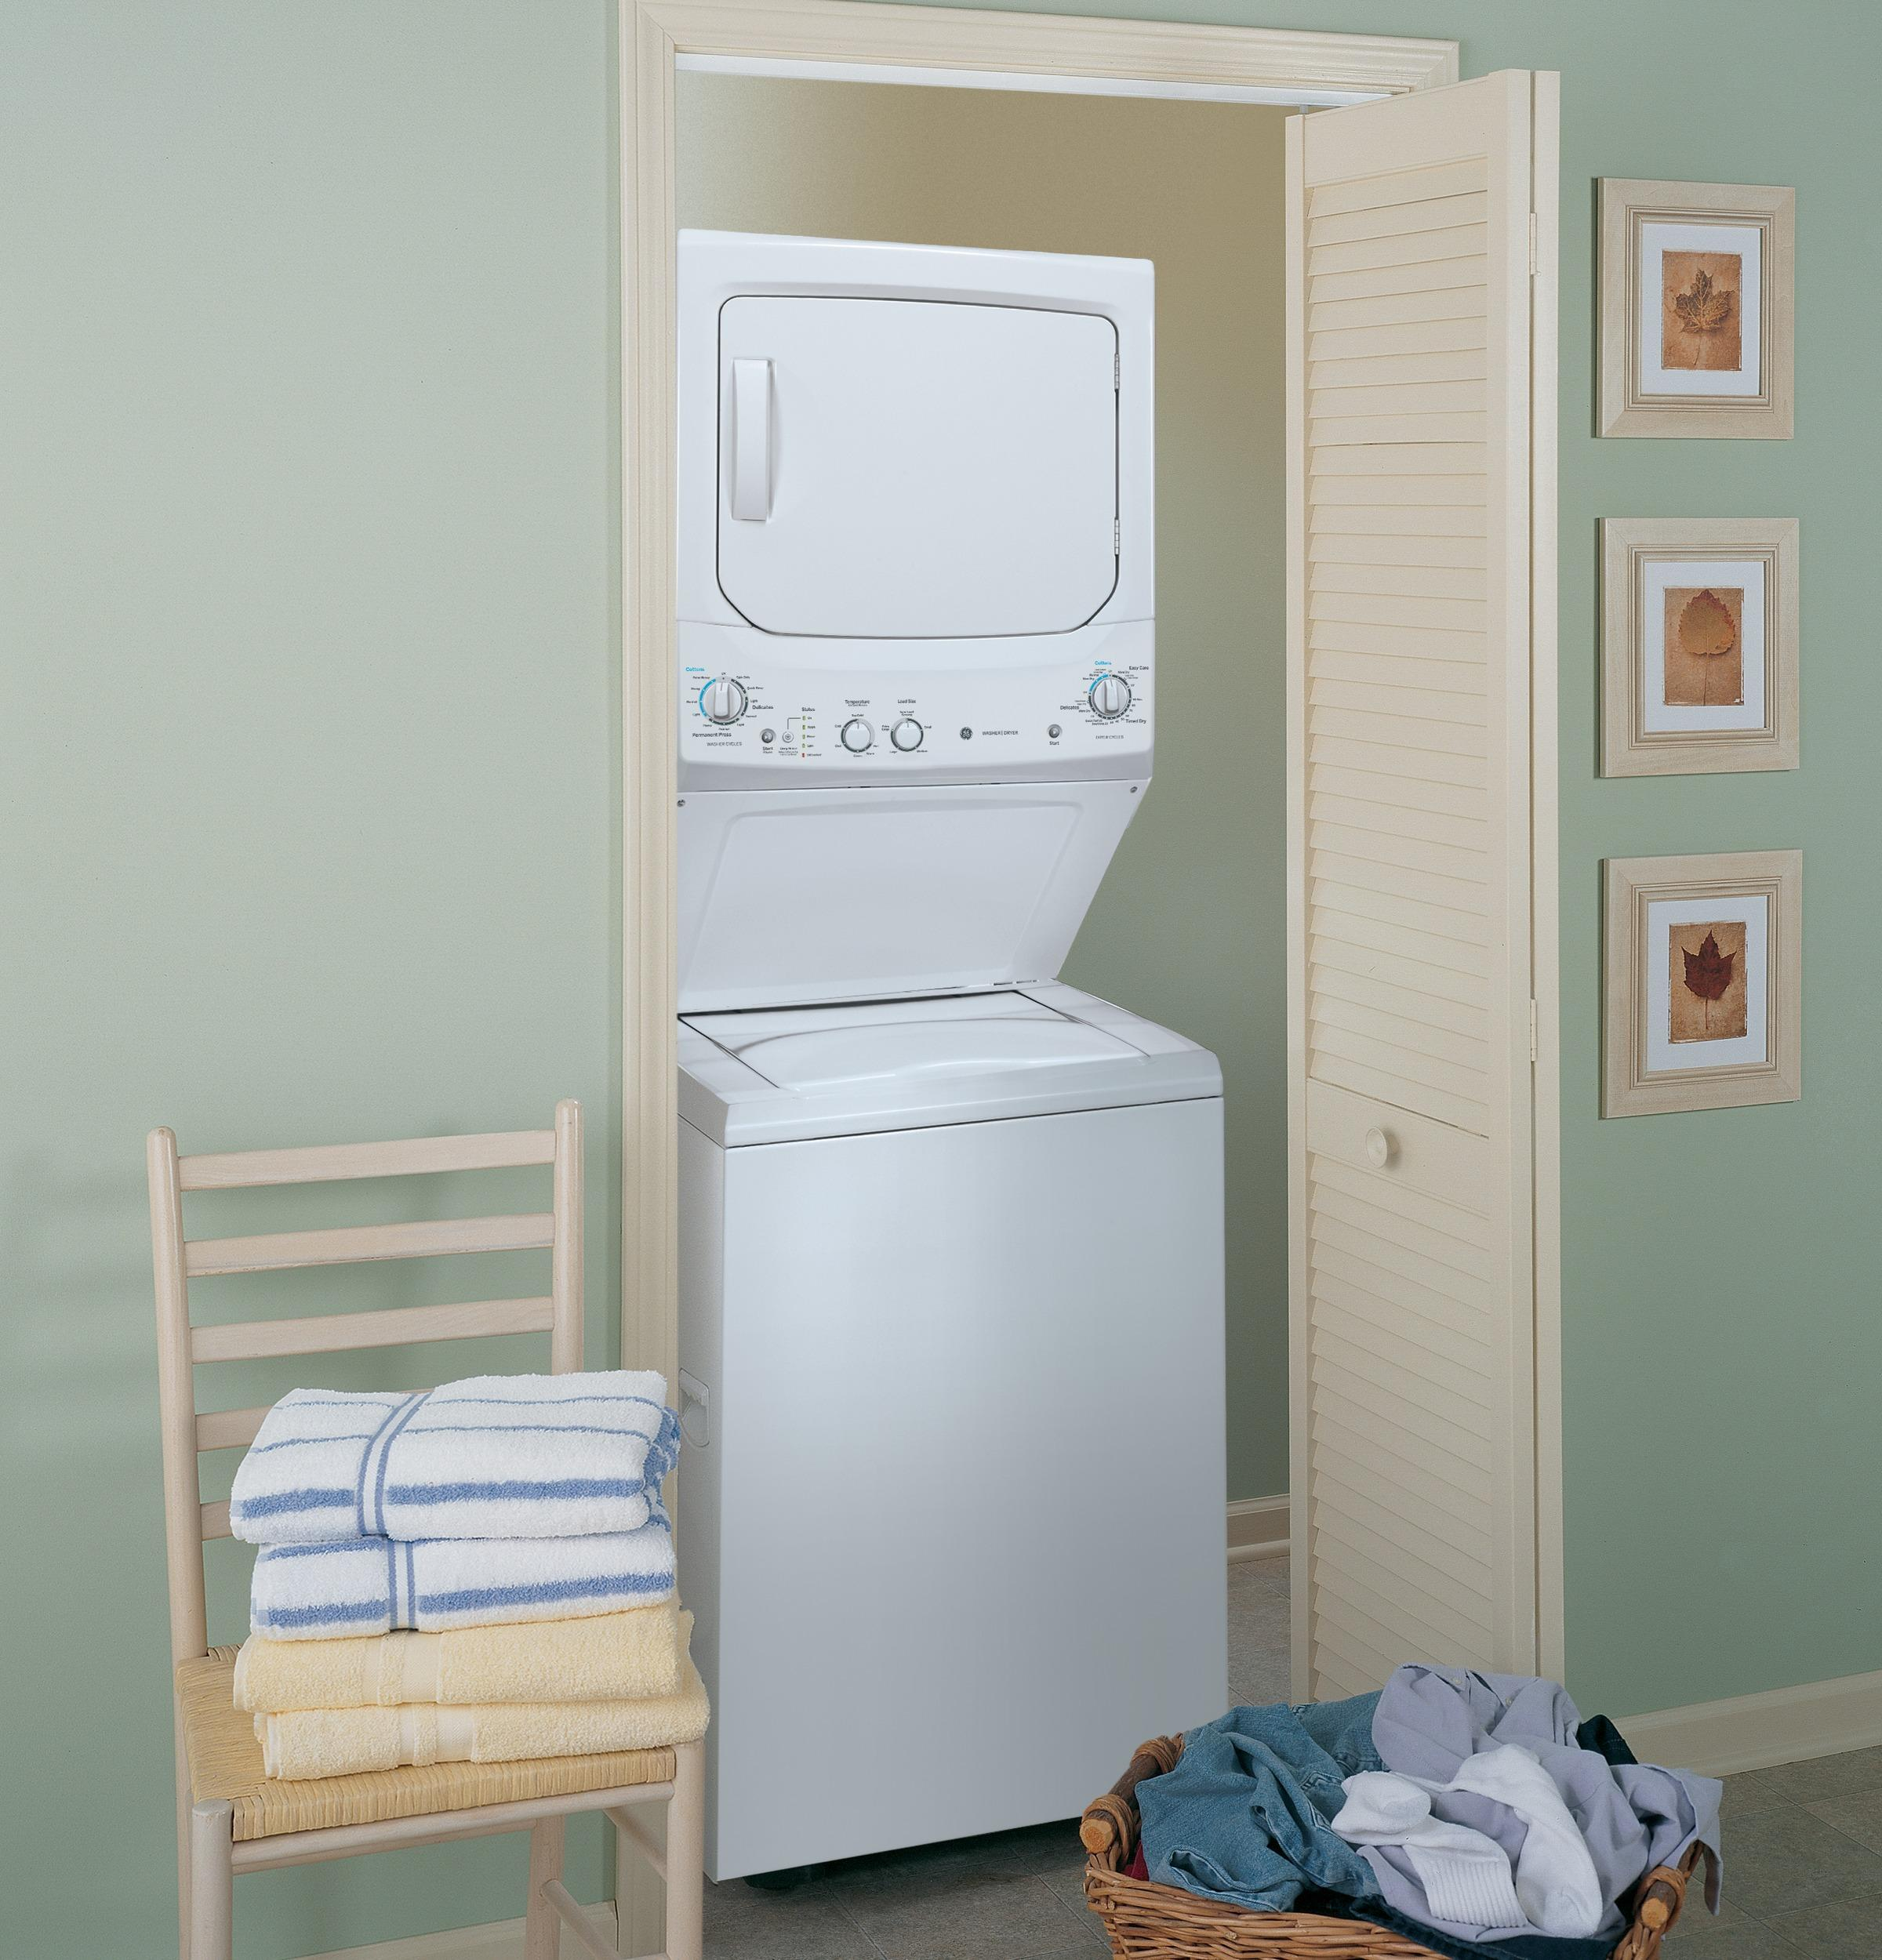 GE Unitized Spacemaker(R) 3.2 DOE cu. ft. Washer and 5.9 cu. ft. Electric Dryer  White on White